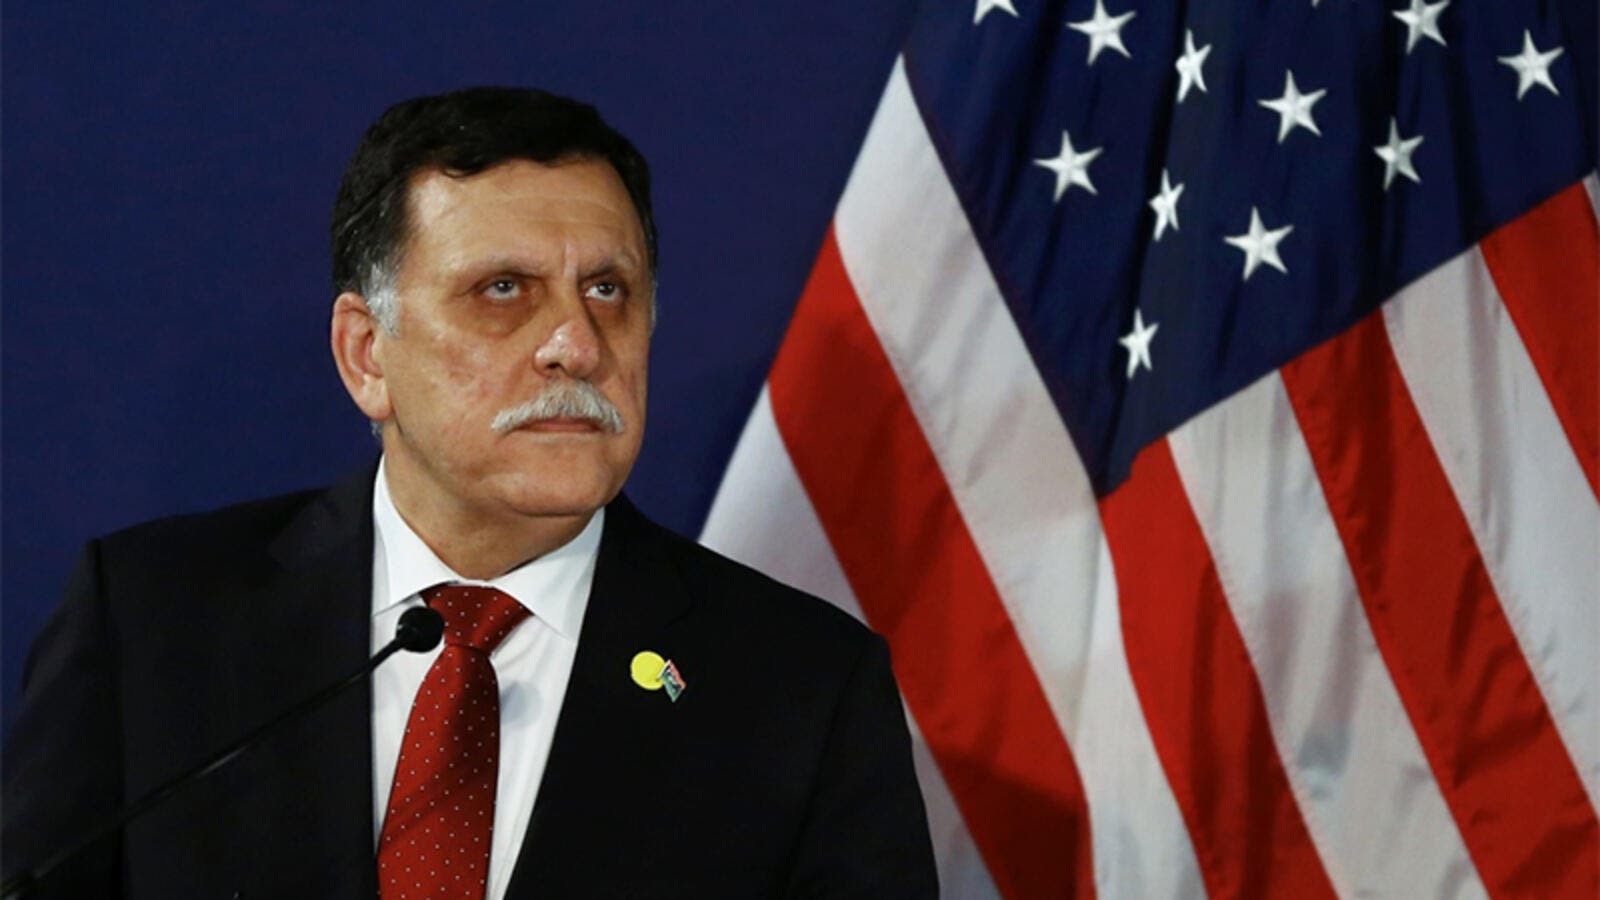 Fayez Sarraj addresses a press conference on May 16, 2016 in Vienna, Austria. (AFP/Leonhard Foeger)